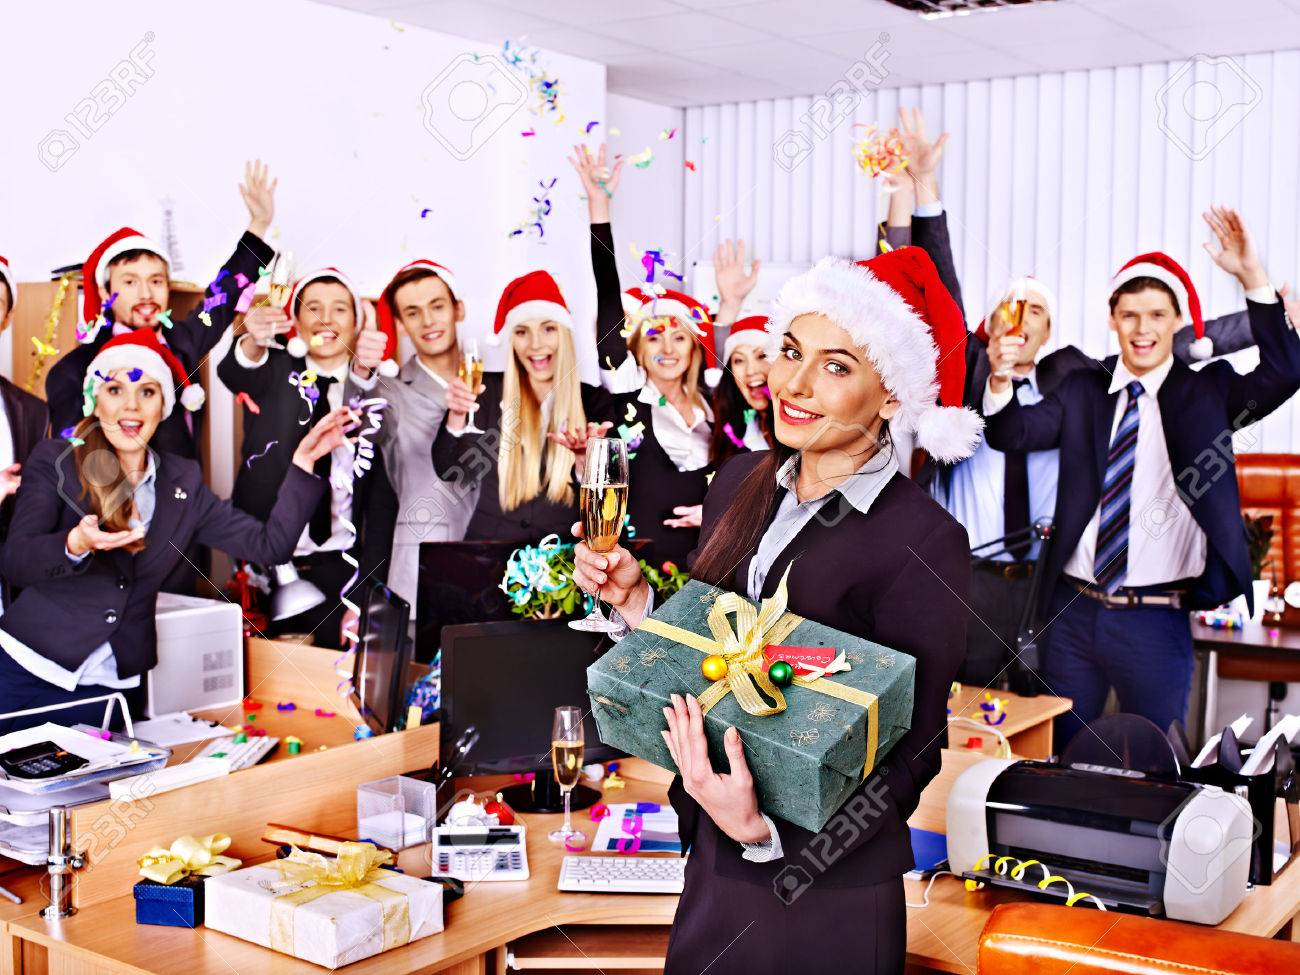 office party christmas images stock pictures royalty office party christmas happy business group people in santa hat at xmas party